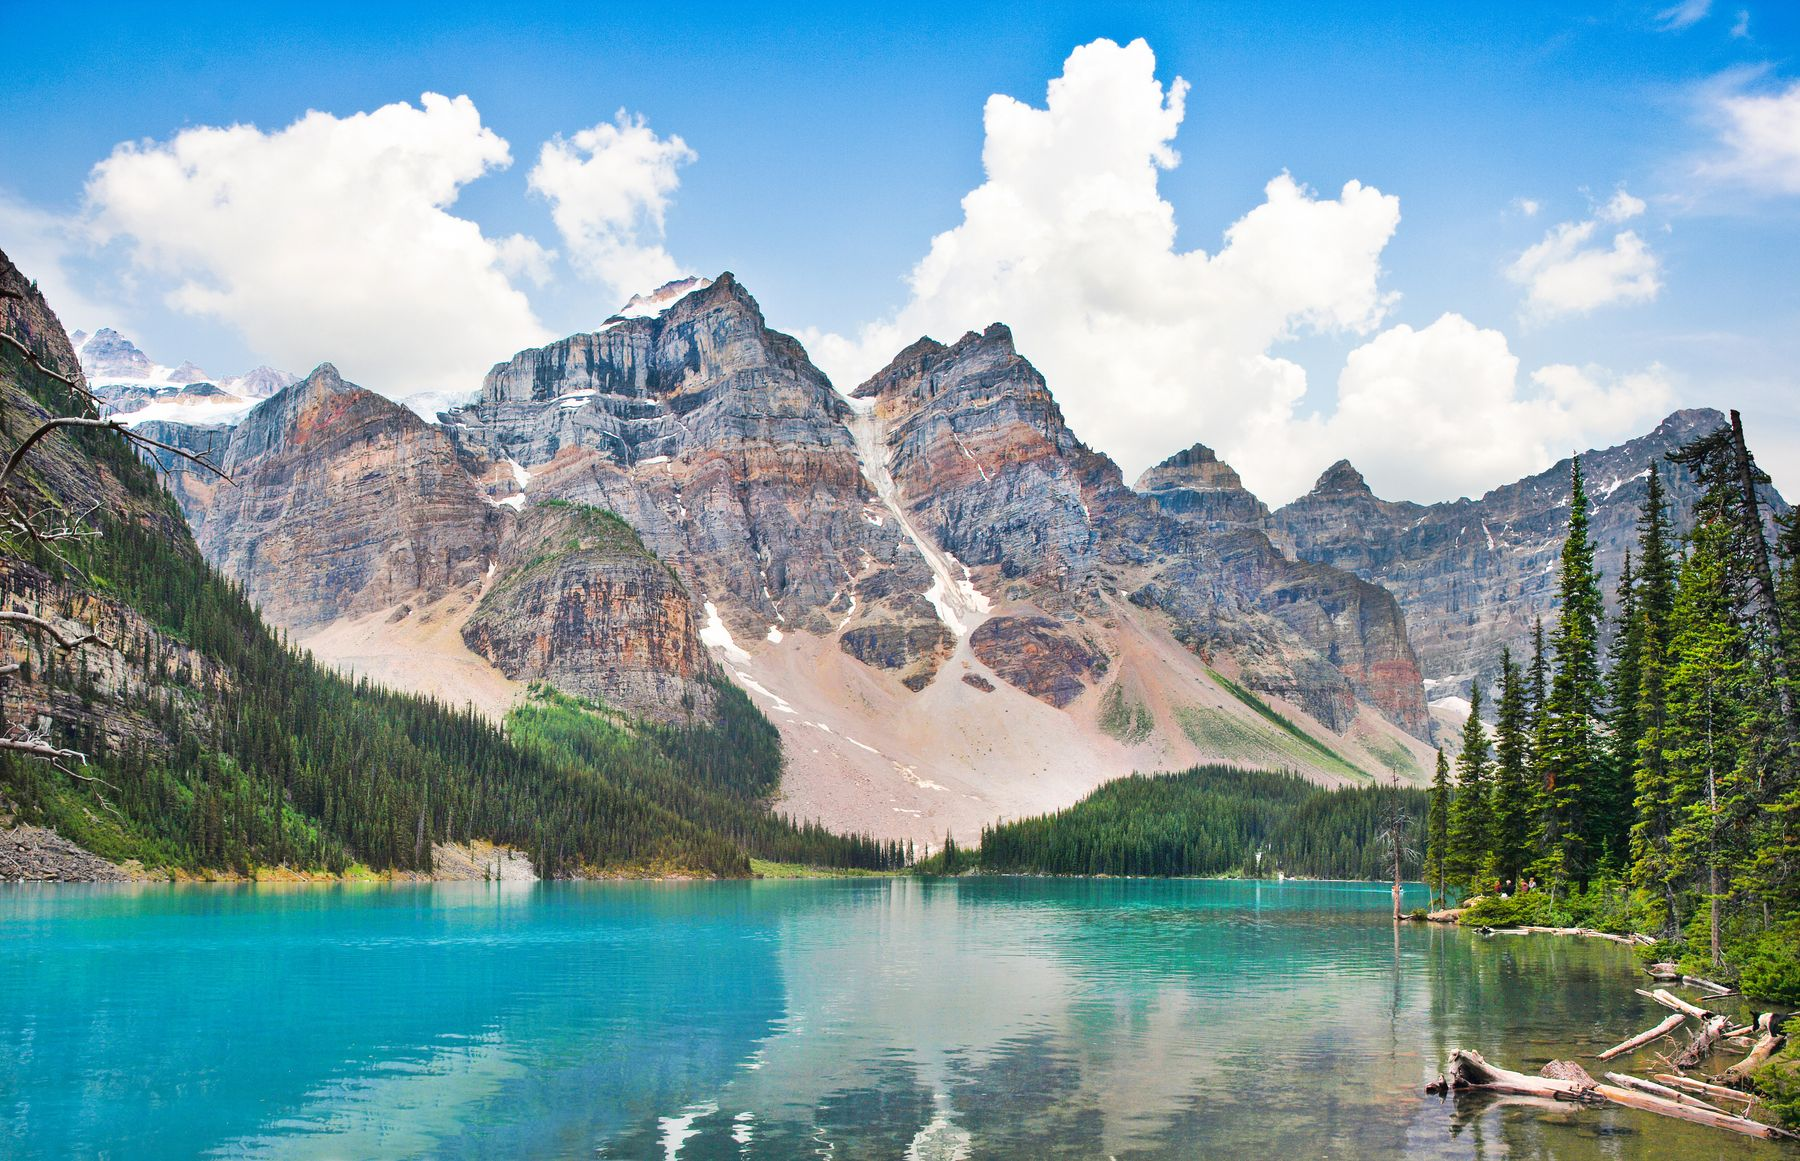 Summer view of Lake Louise in Banff National Park, Canada